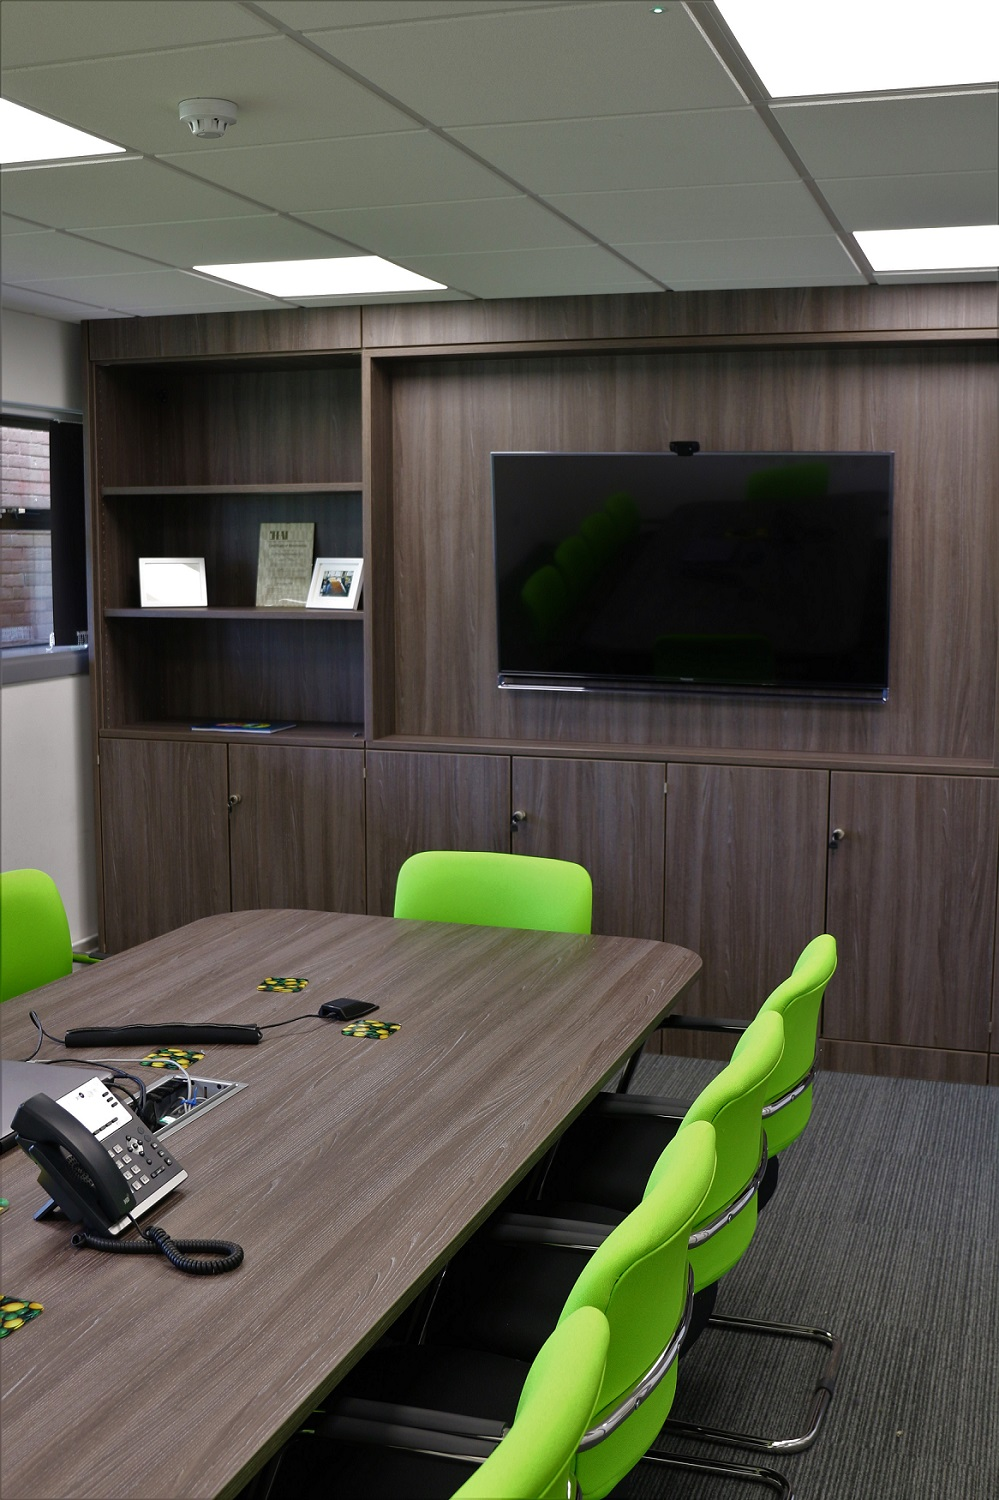 Bespoke furniture and AV equipment